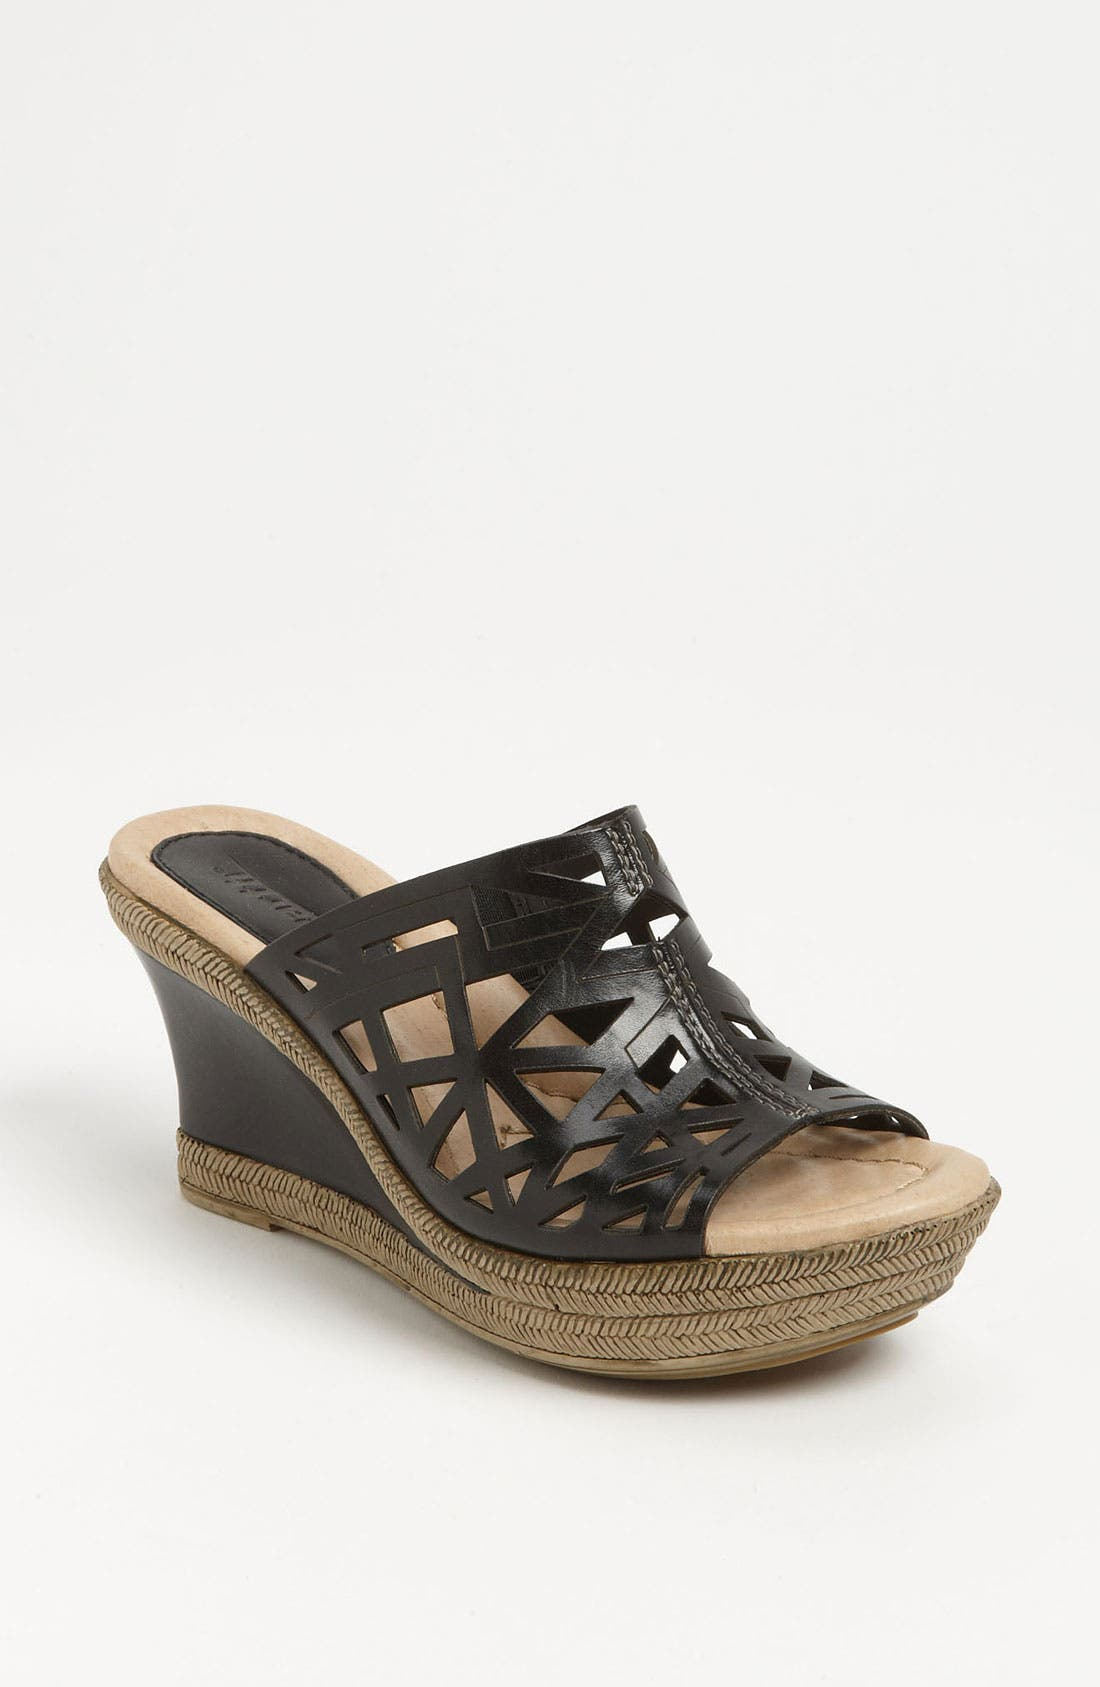 Alternate Image 1 Selected - Earth® 'Sugarpine' Sandal